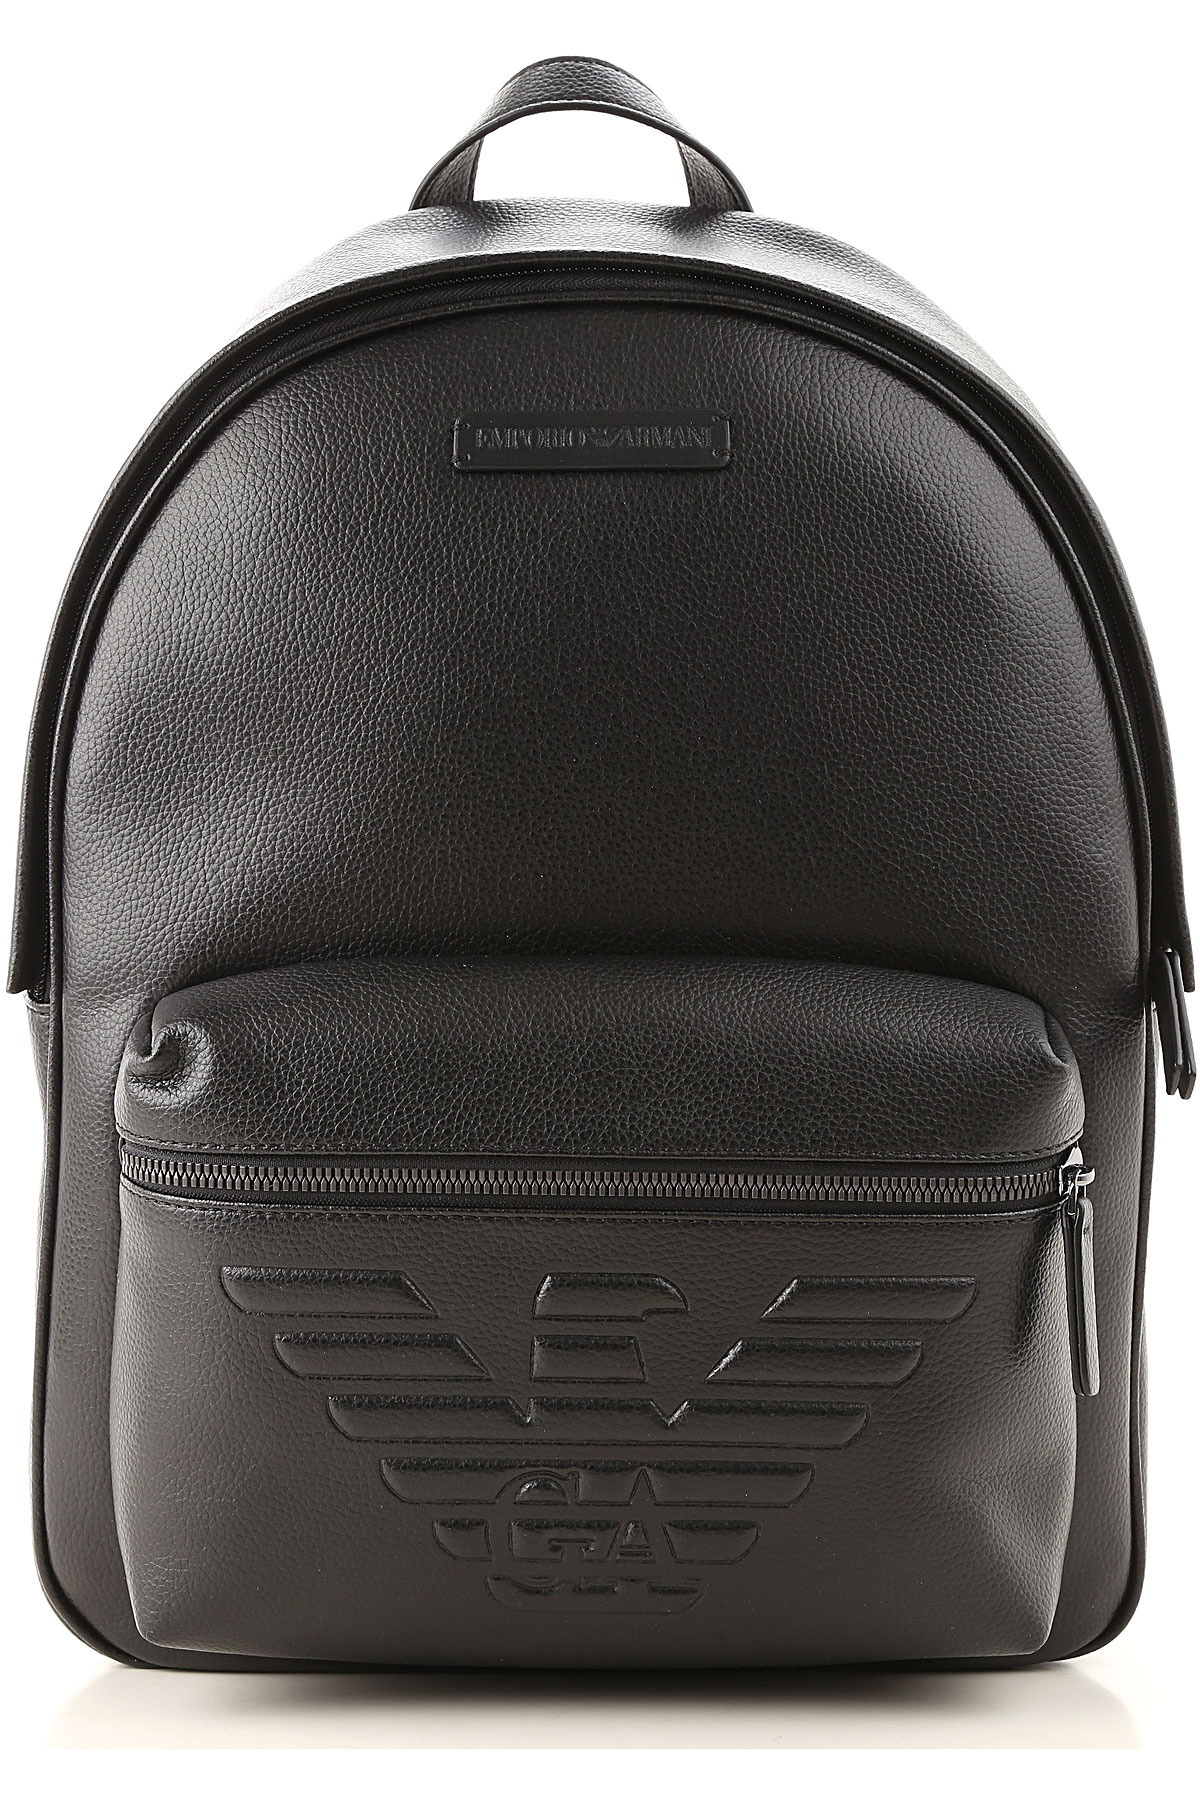 Emporio Armani Backpack for Men On Sale, Black, Leather, 2019